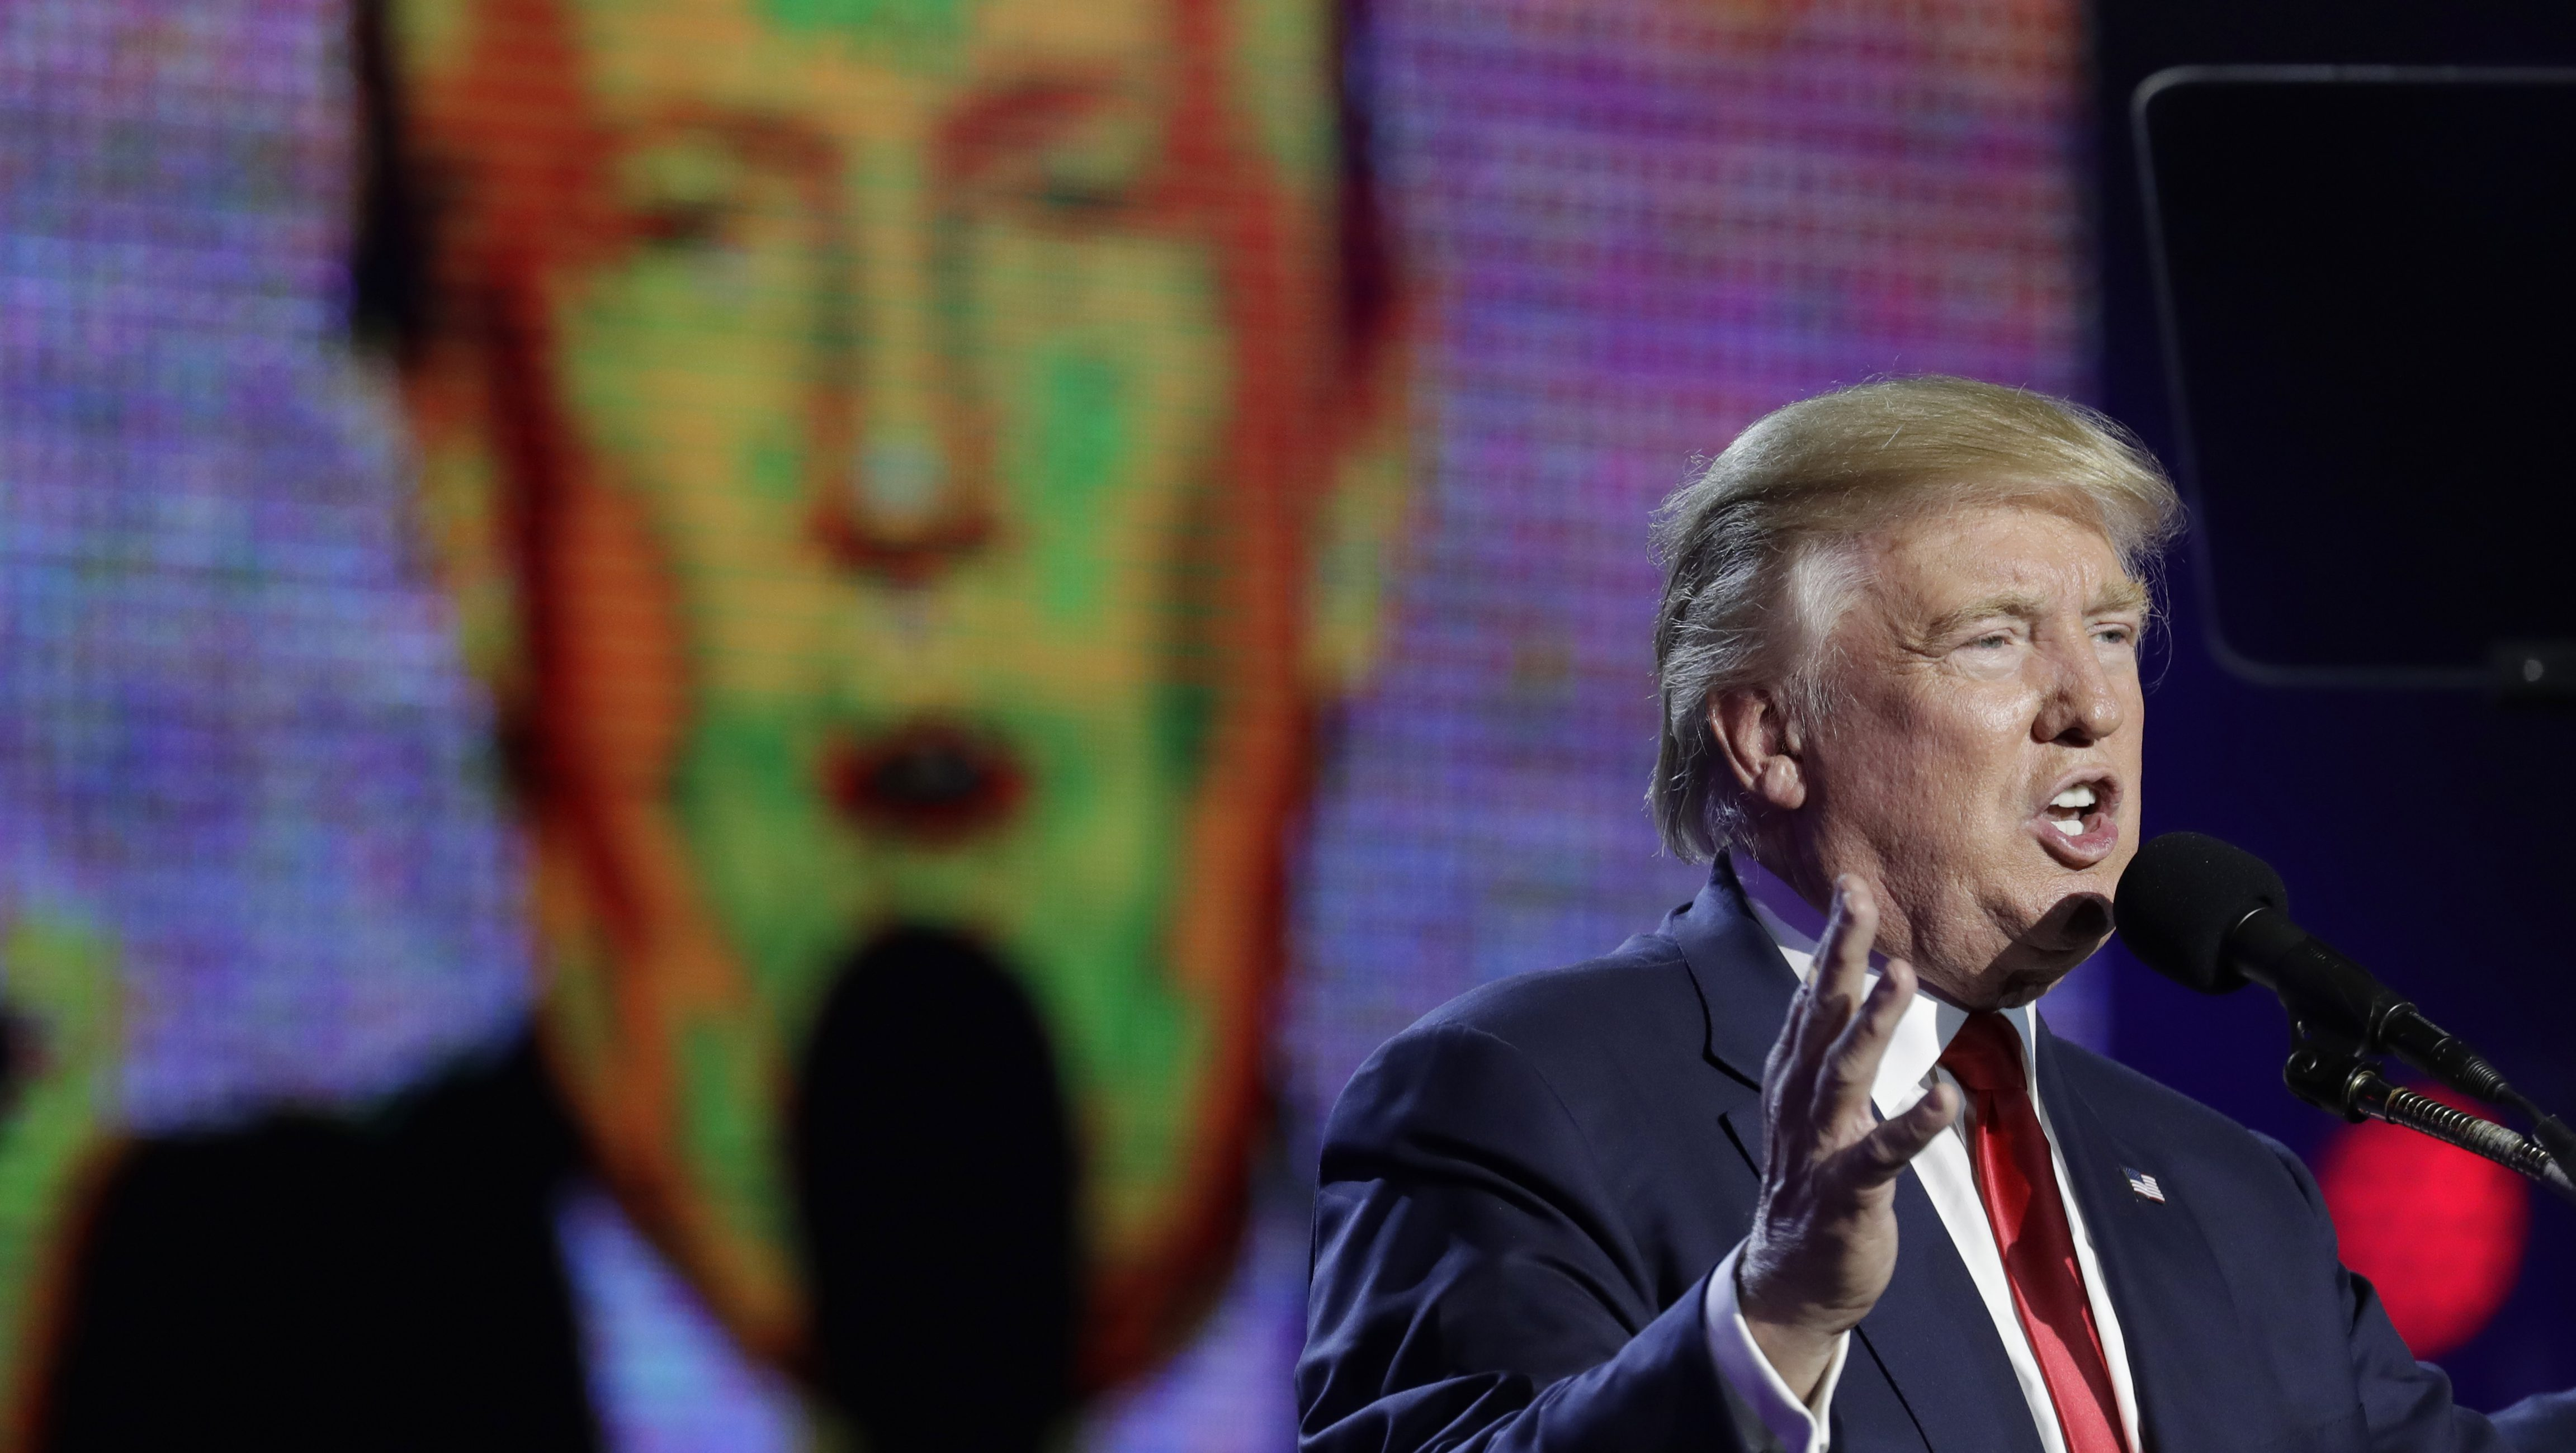 Republican presidential candidate Donald Trump is seen on a large screen as he speaks during a charity event hosted by the Republican Hindu Coalition, Saturday, Oct. 15, 2016, in Edison, N.J. (AP Photo/Julio Cortez)